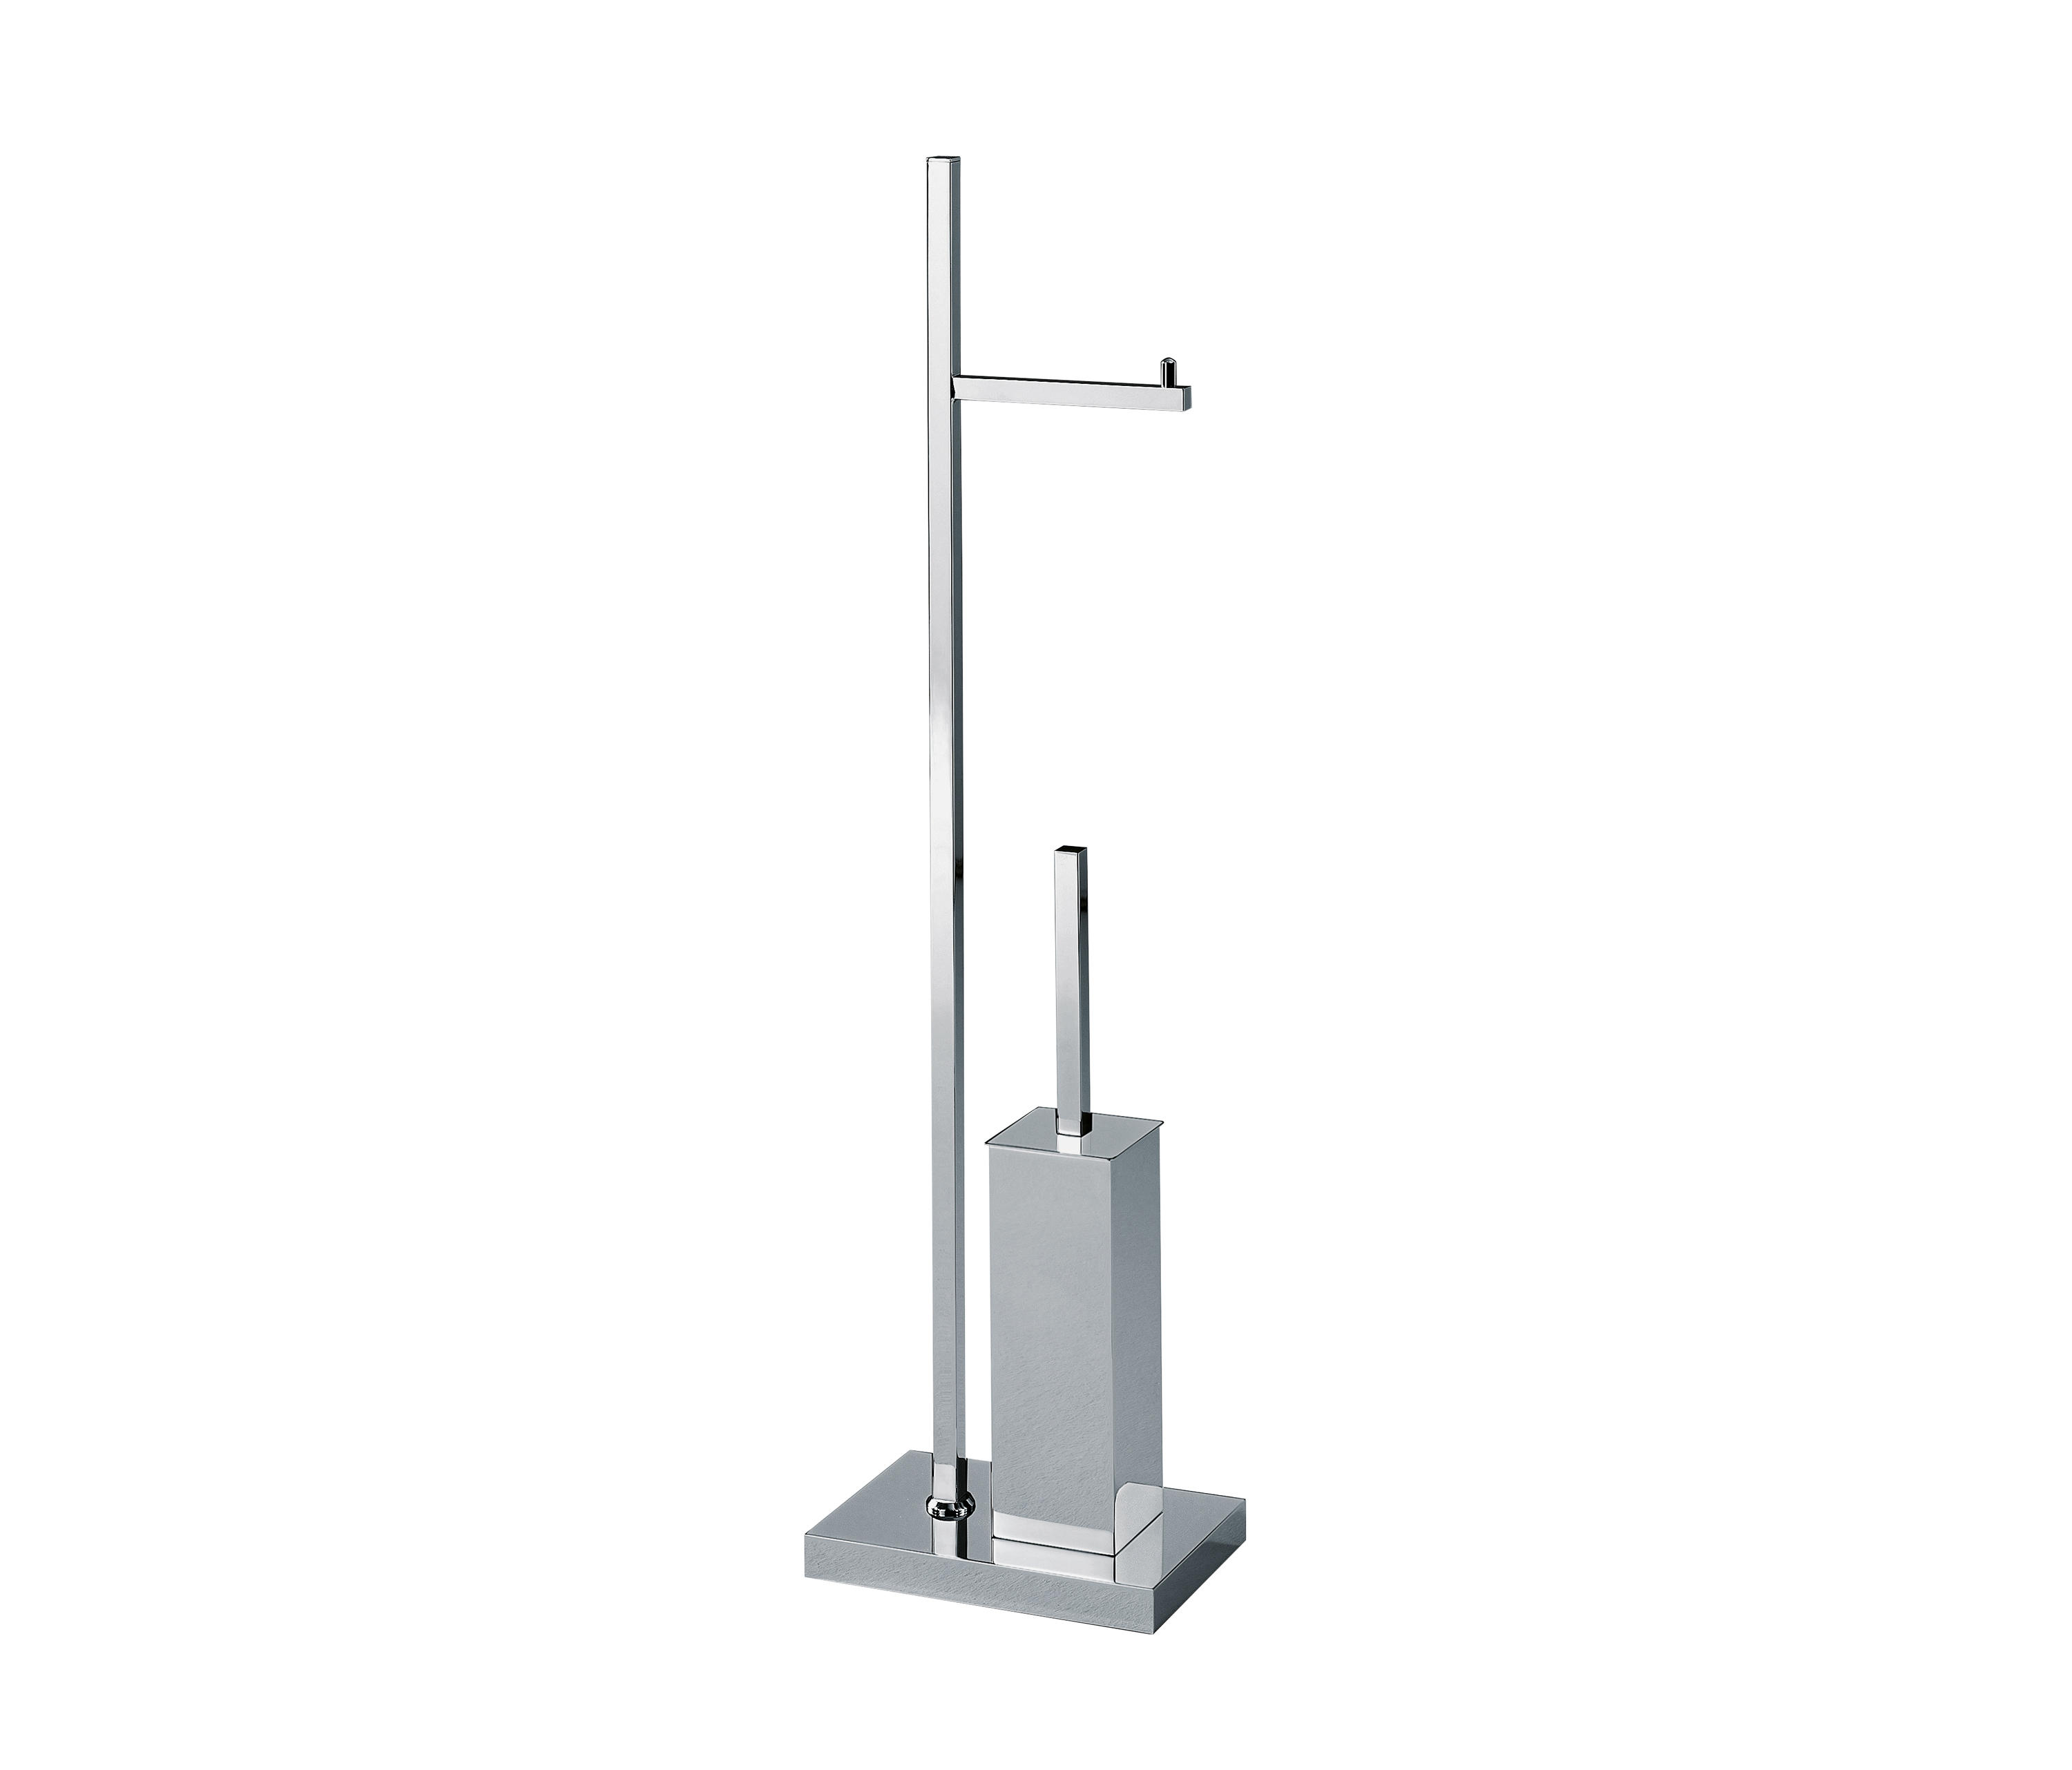 Decor Walther Frankfurt dw 671 toilet stands from decor walther architonic